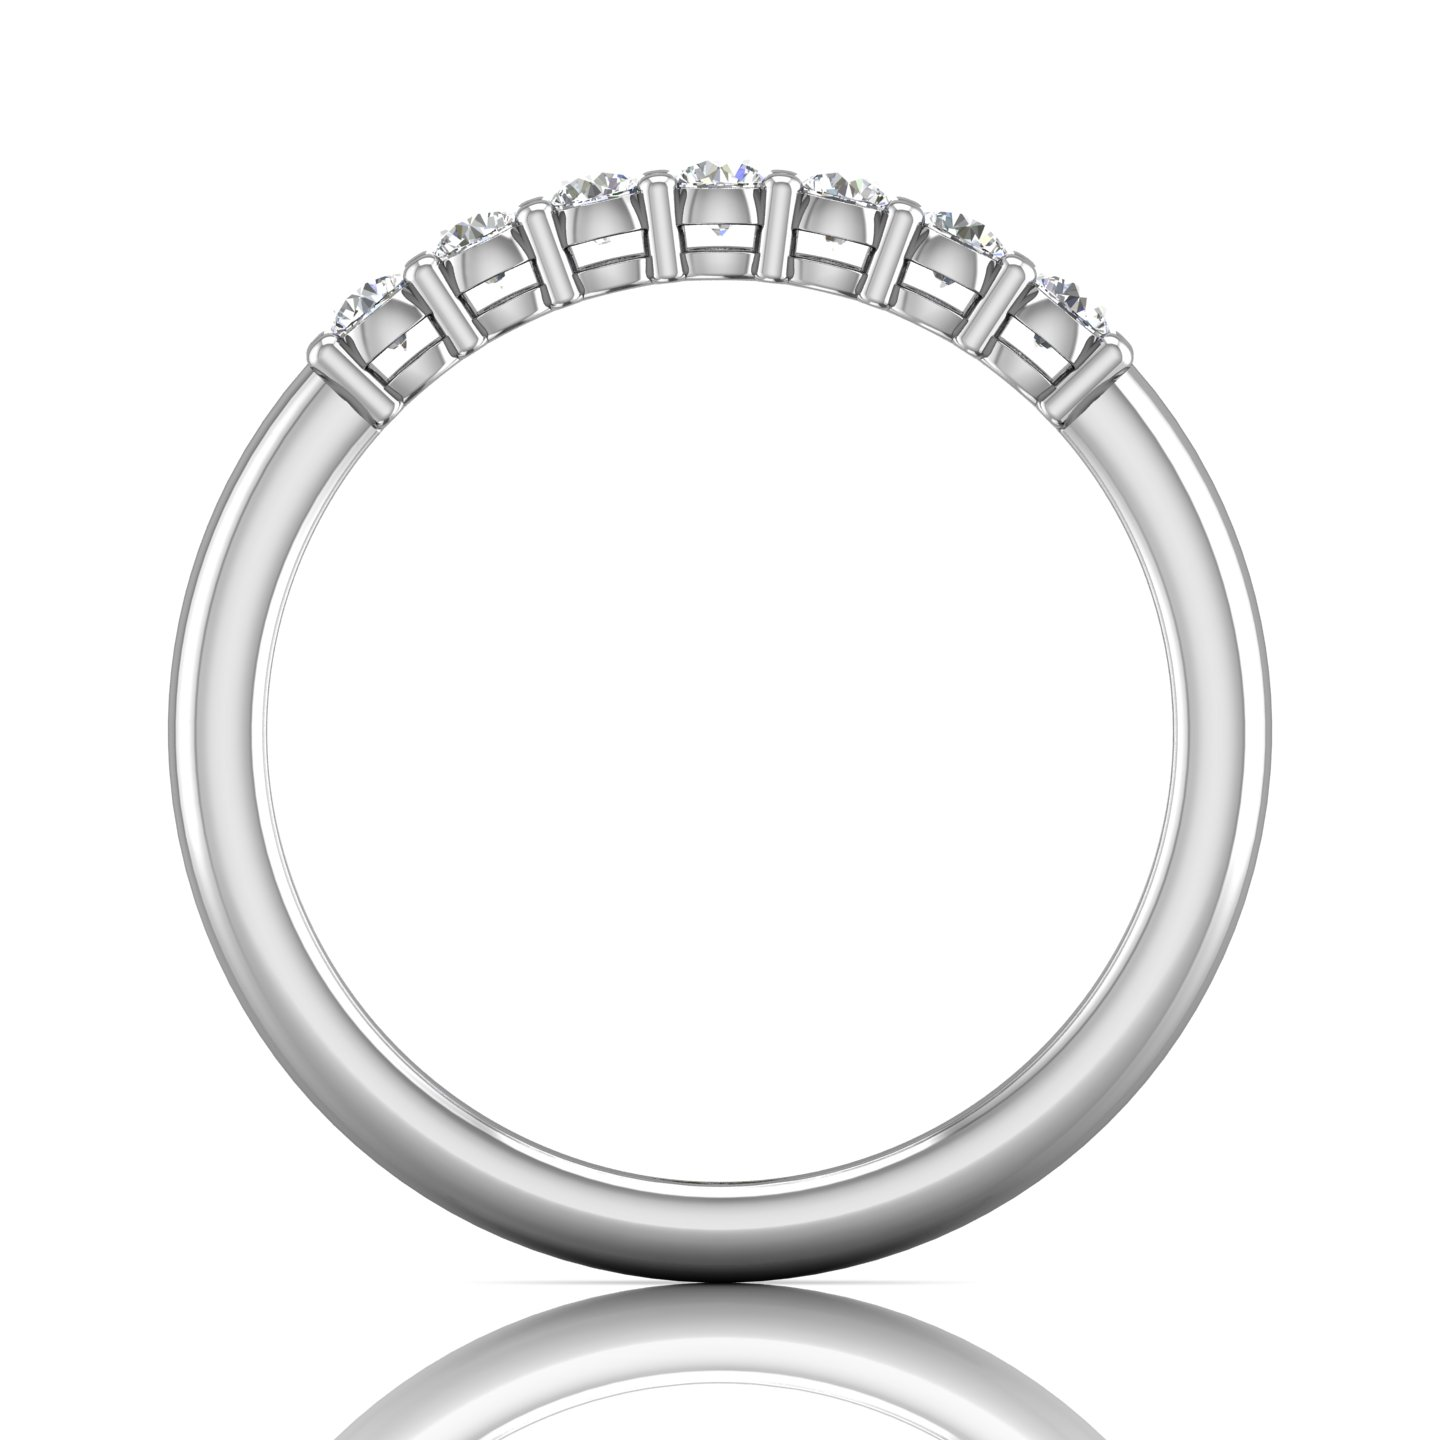 Rings - 14K White Gold FlyerFit Shared Prong Wedding Band - image #2